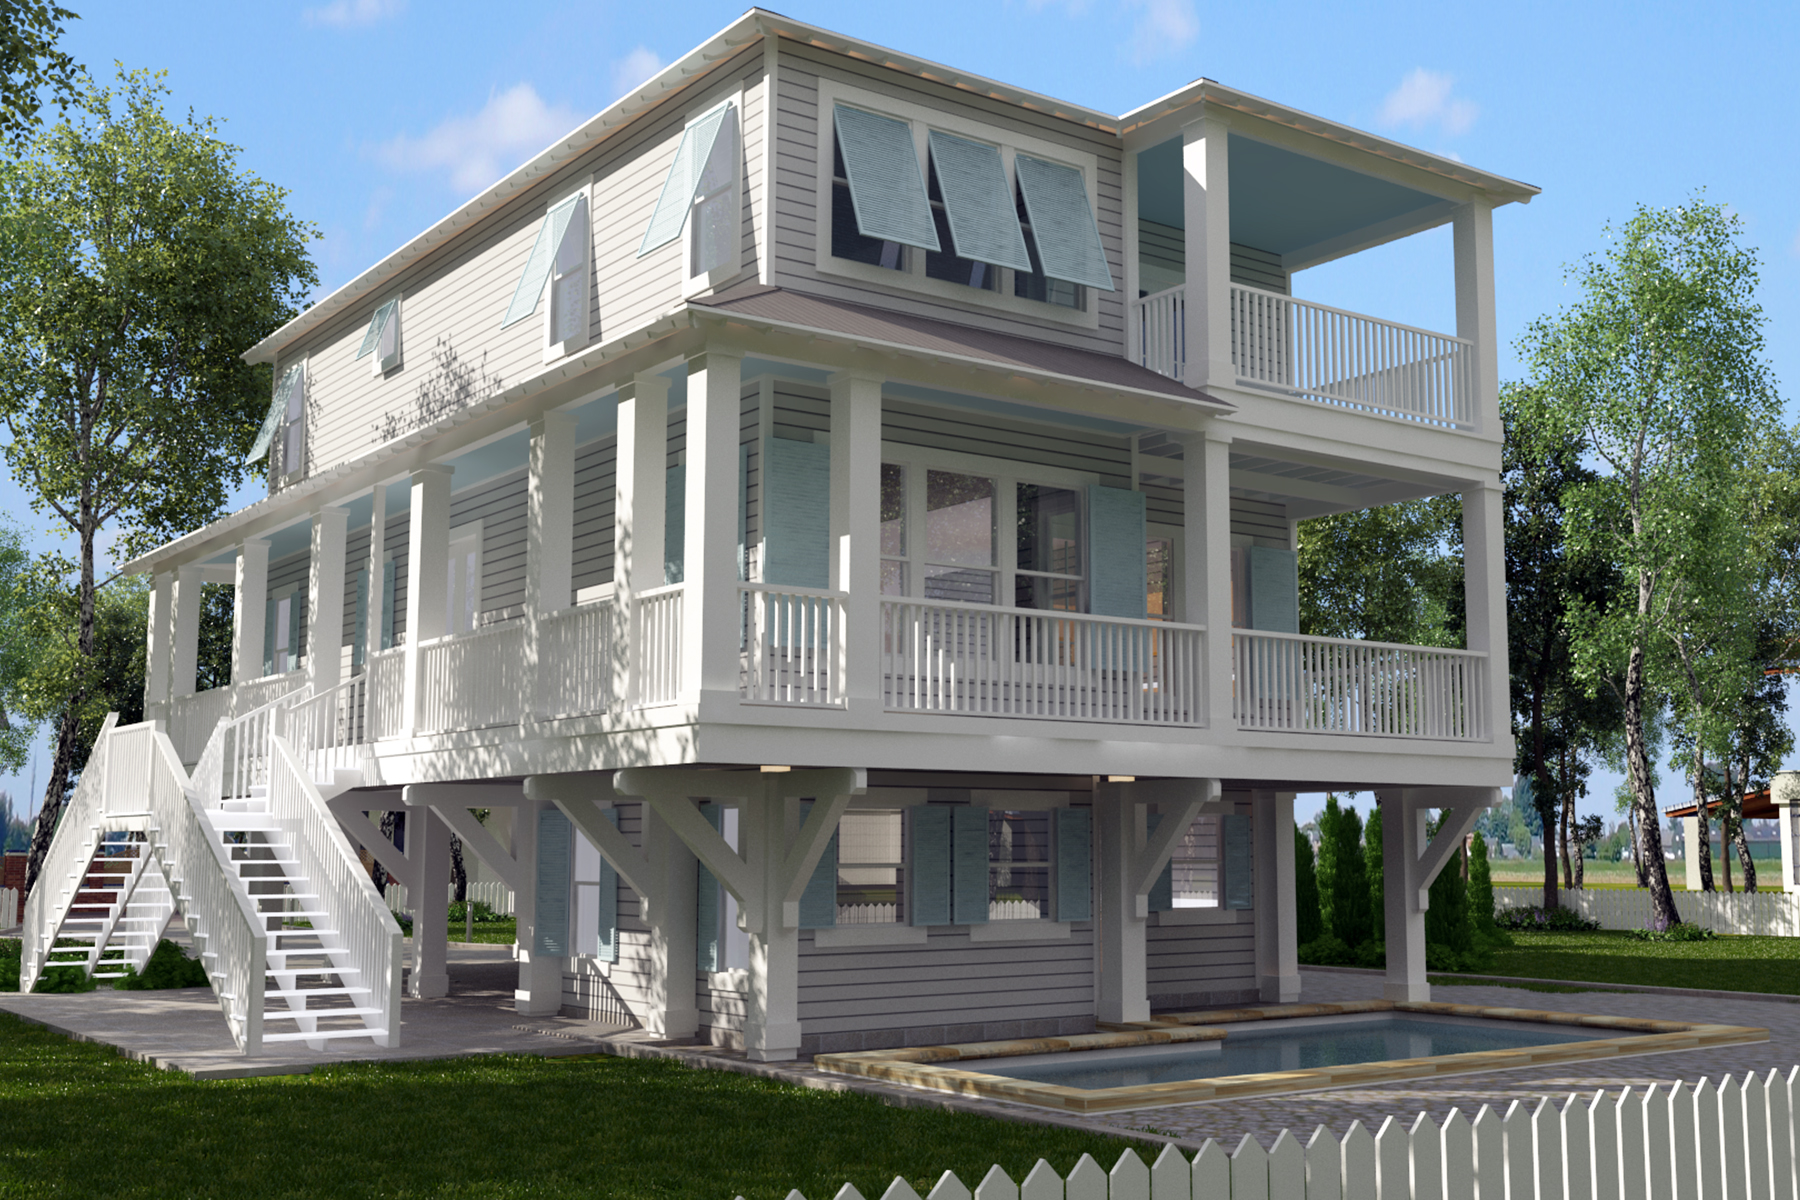 Single Family Home for Sale at BEAUTIFUL BRAND NEW HOME WITH TOP AMENITIES 55 West Grove Avenue Santa Rosa Beach, Florida, 32459 United States